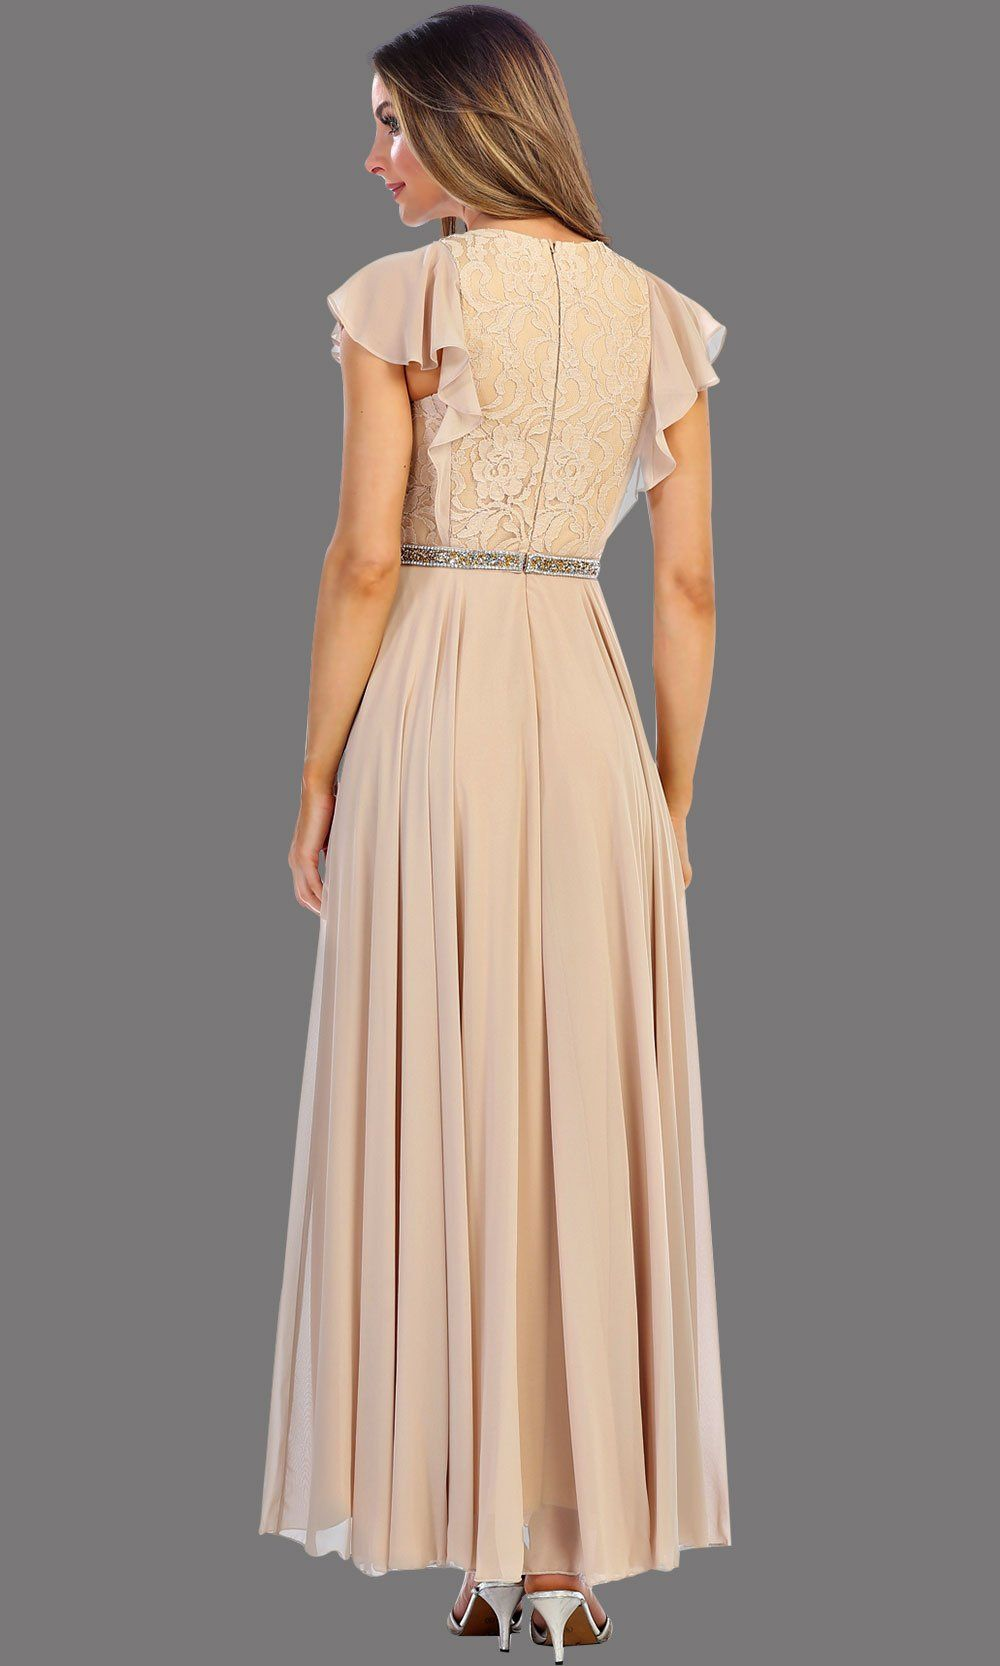 Short Champagne Ruffle Sleeve Dress With Jewel Belt